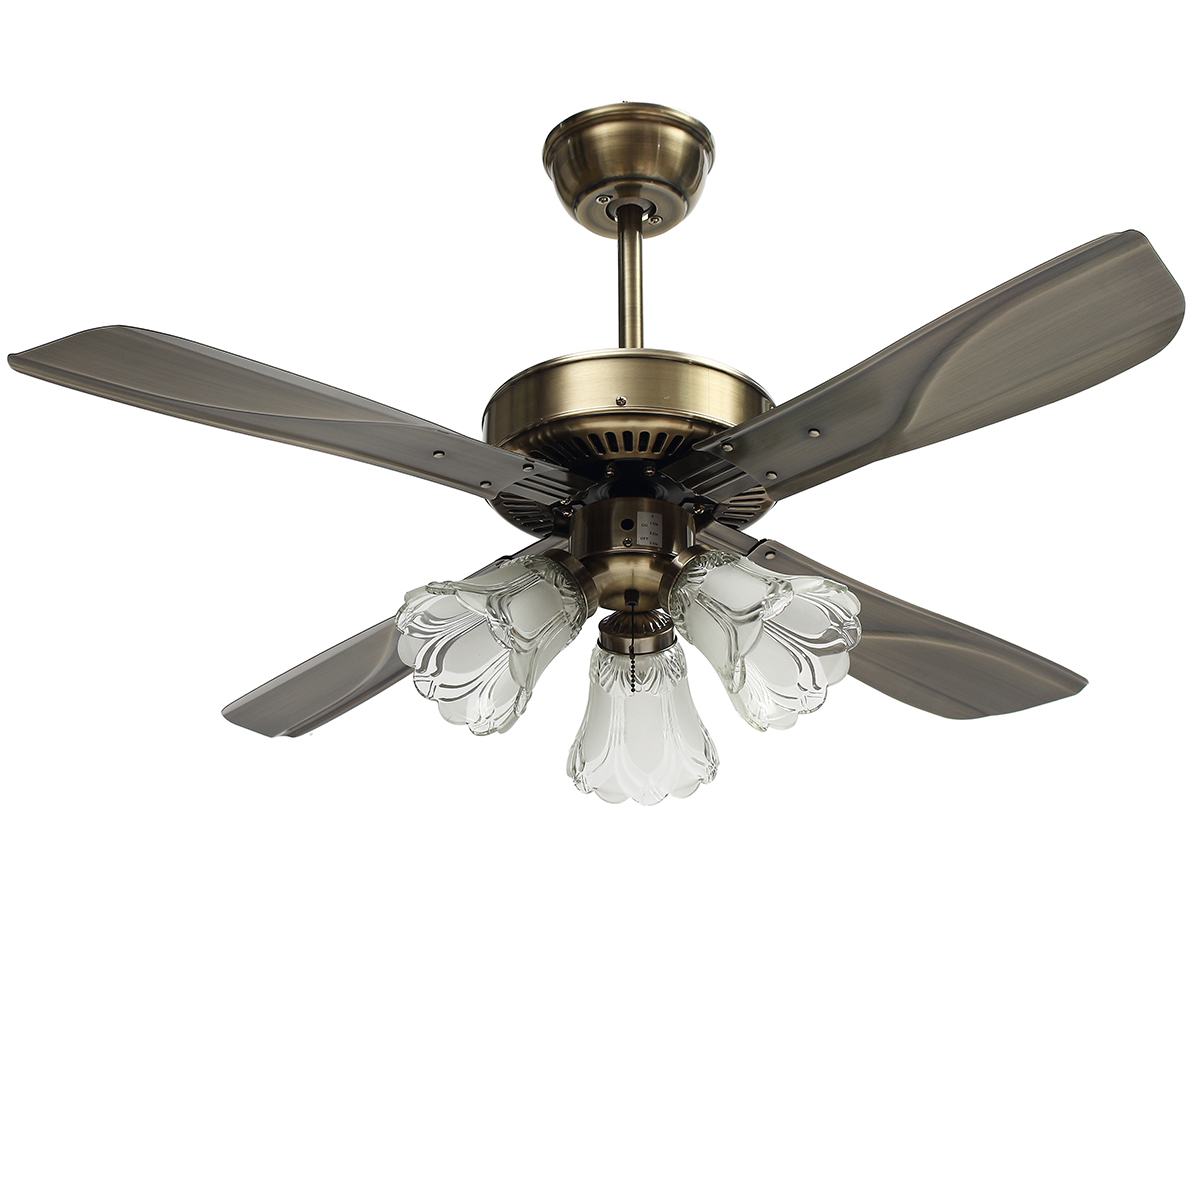 42Inch Antique Ceiling Fan with 3 Lights AC110-240V 4 Metal Blades with Romote Control 3 Speeds